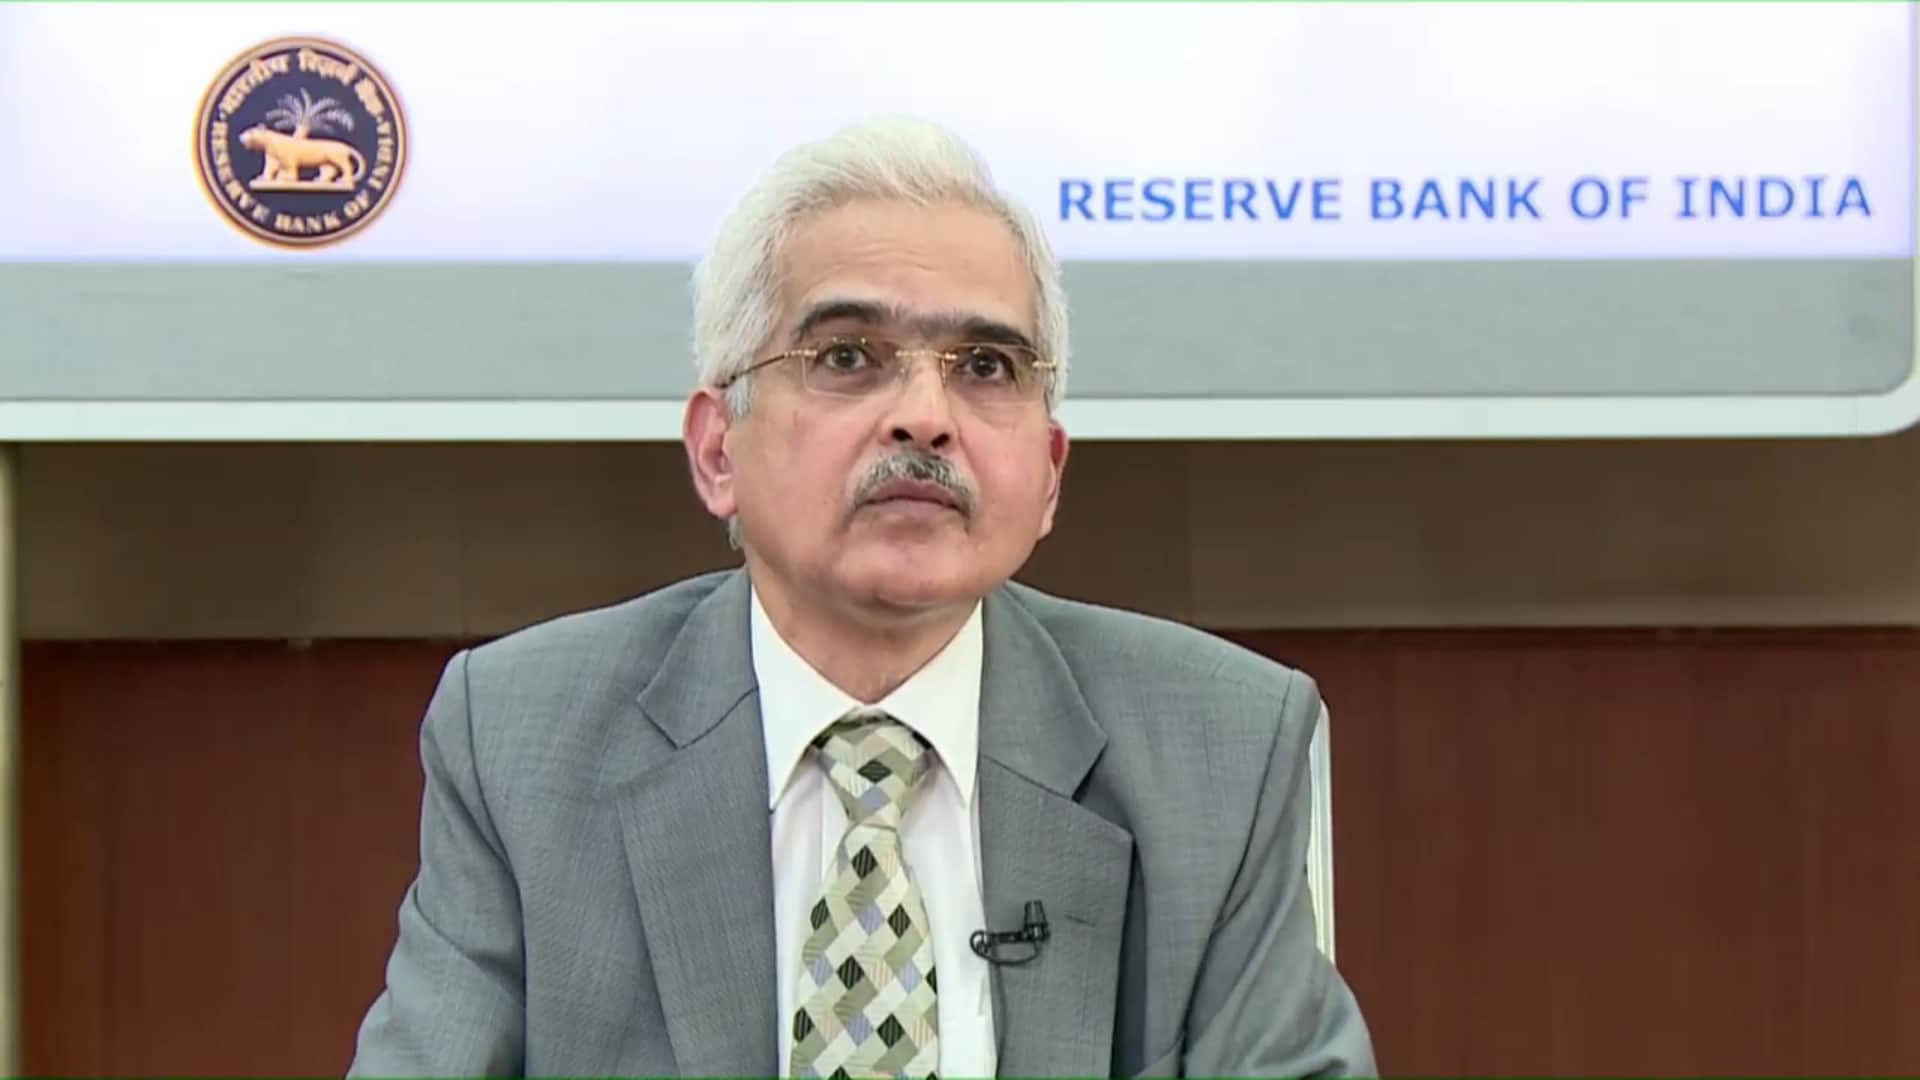 Reserve Bank Does Not Have Specific Target Of Yield Curve: Shaktikanta Das